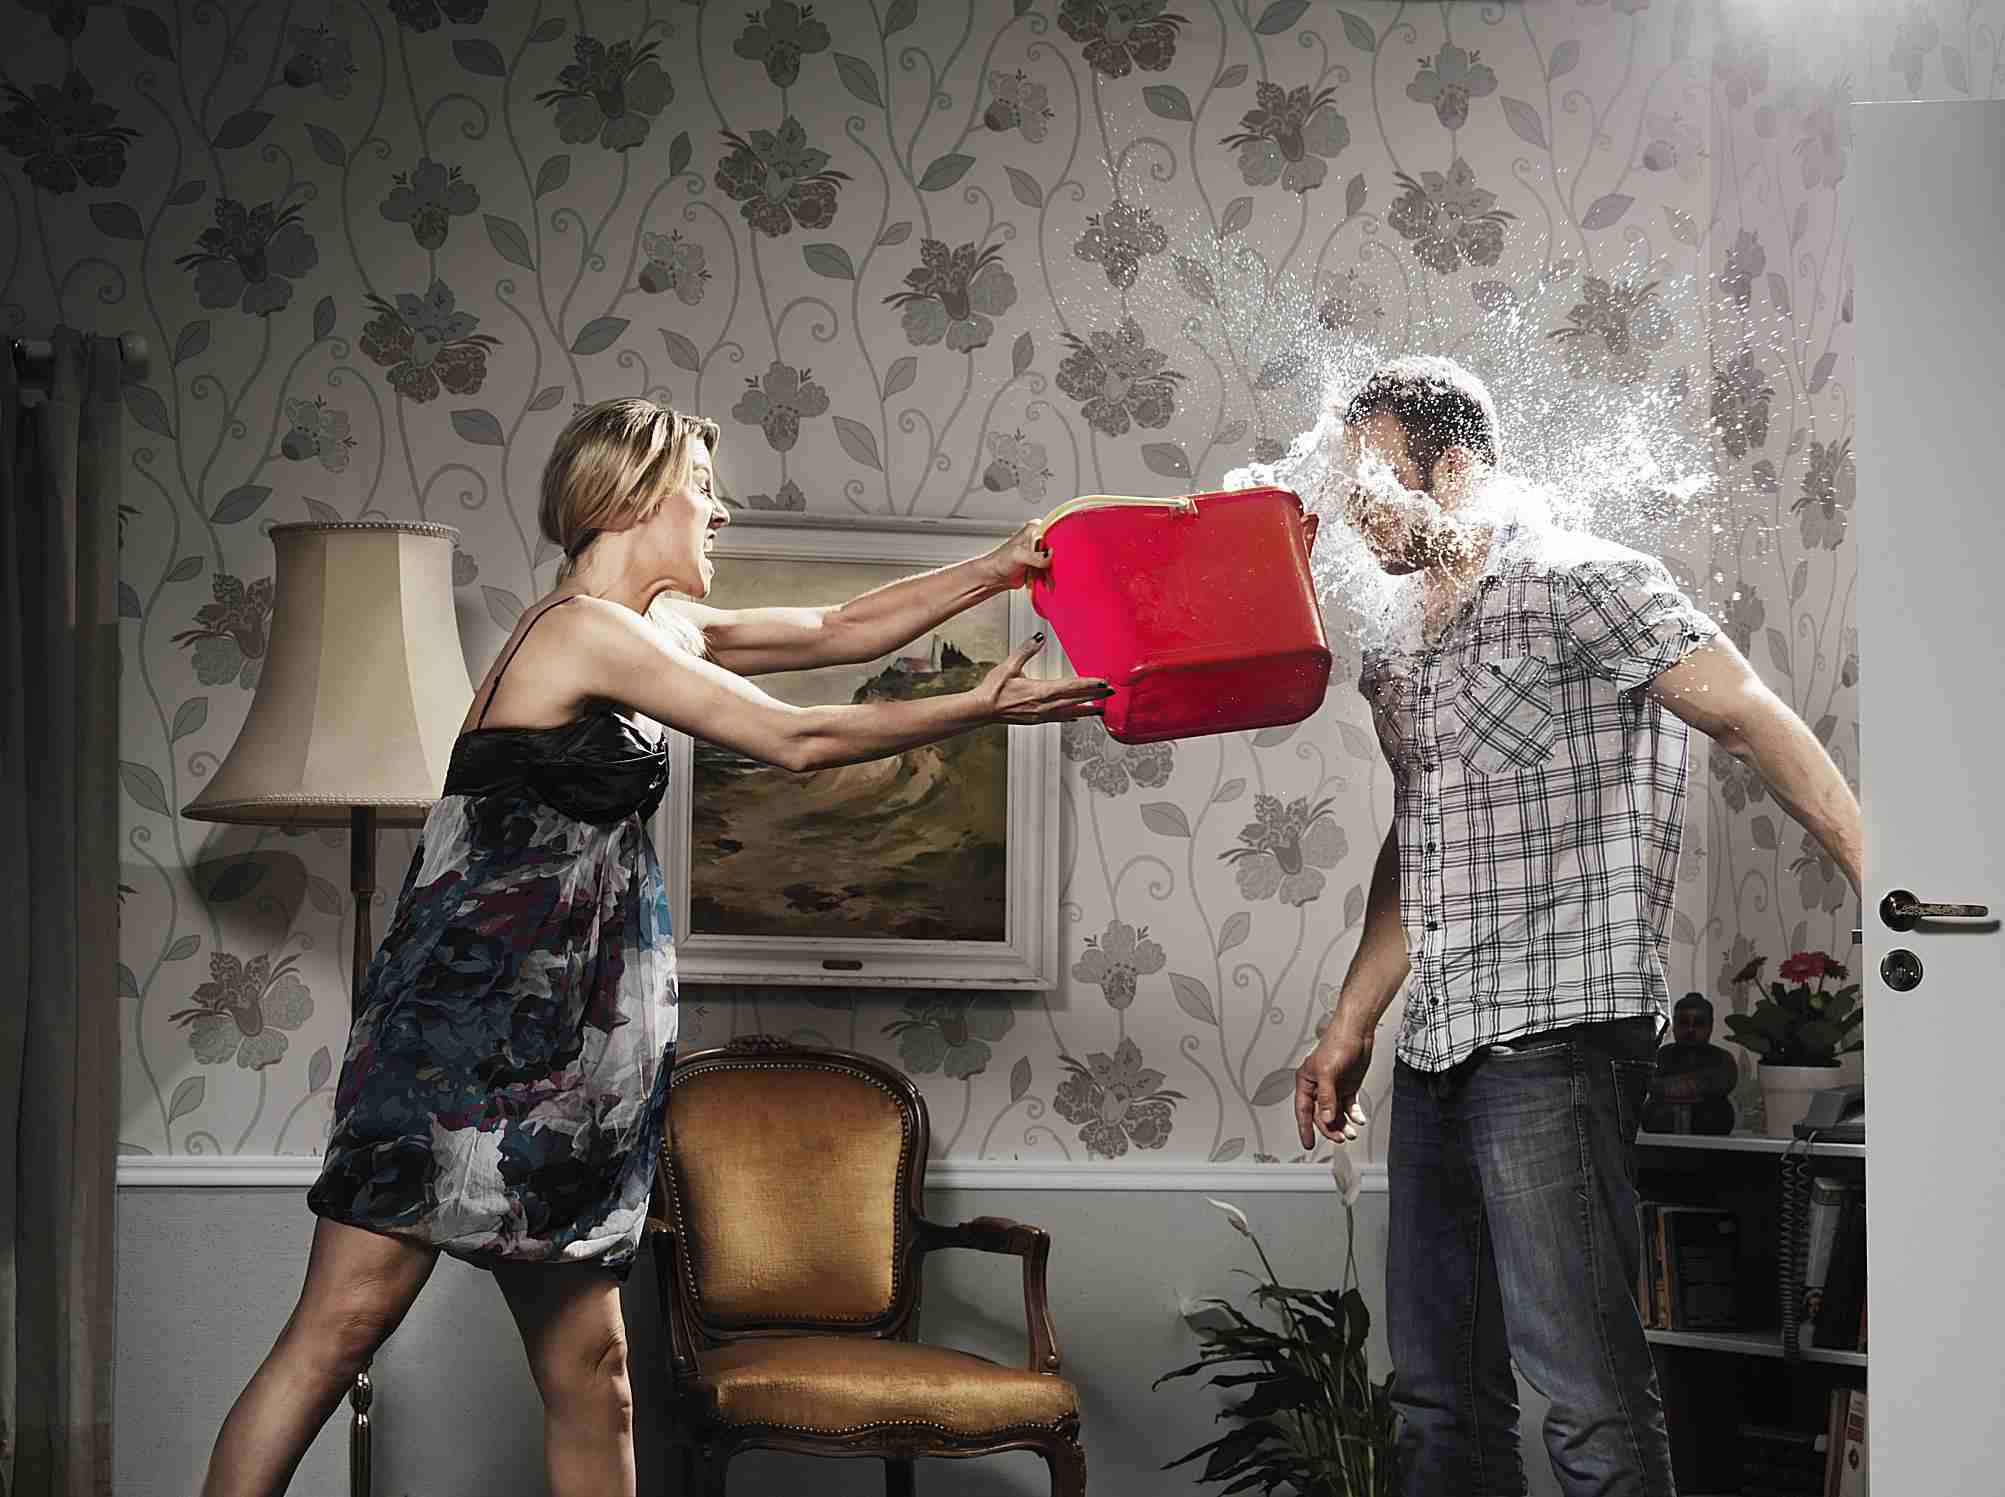 Girl Throwing Water in Mans Face